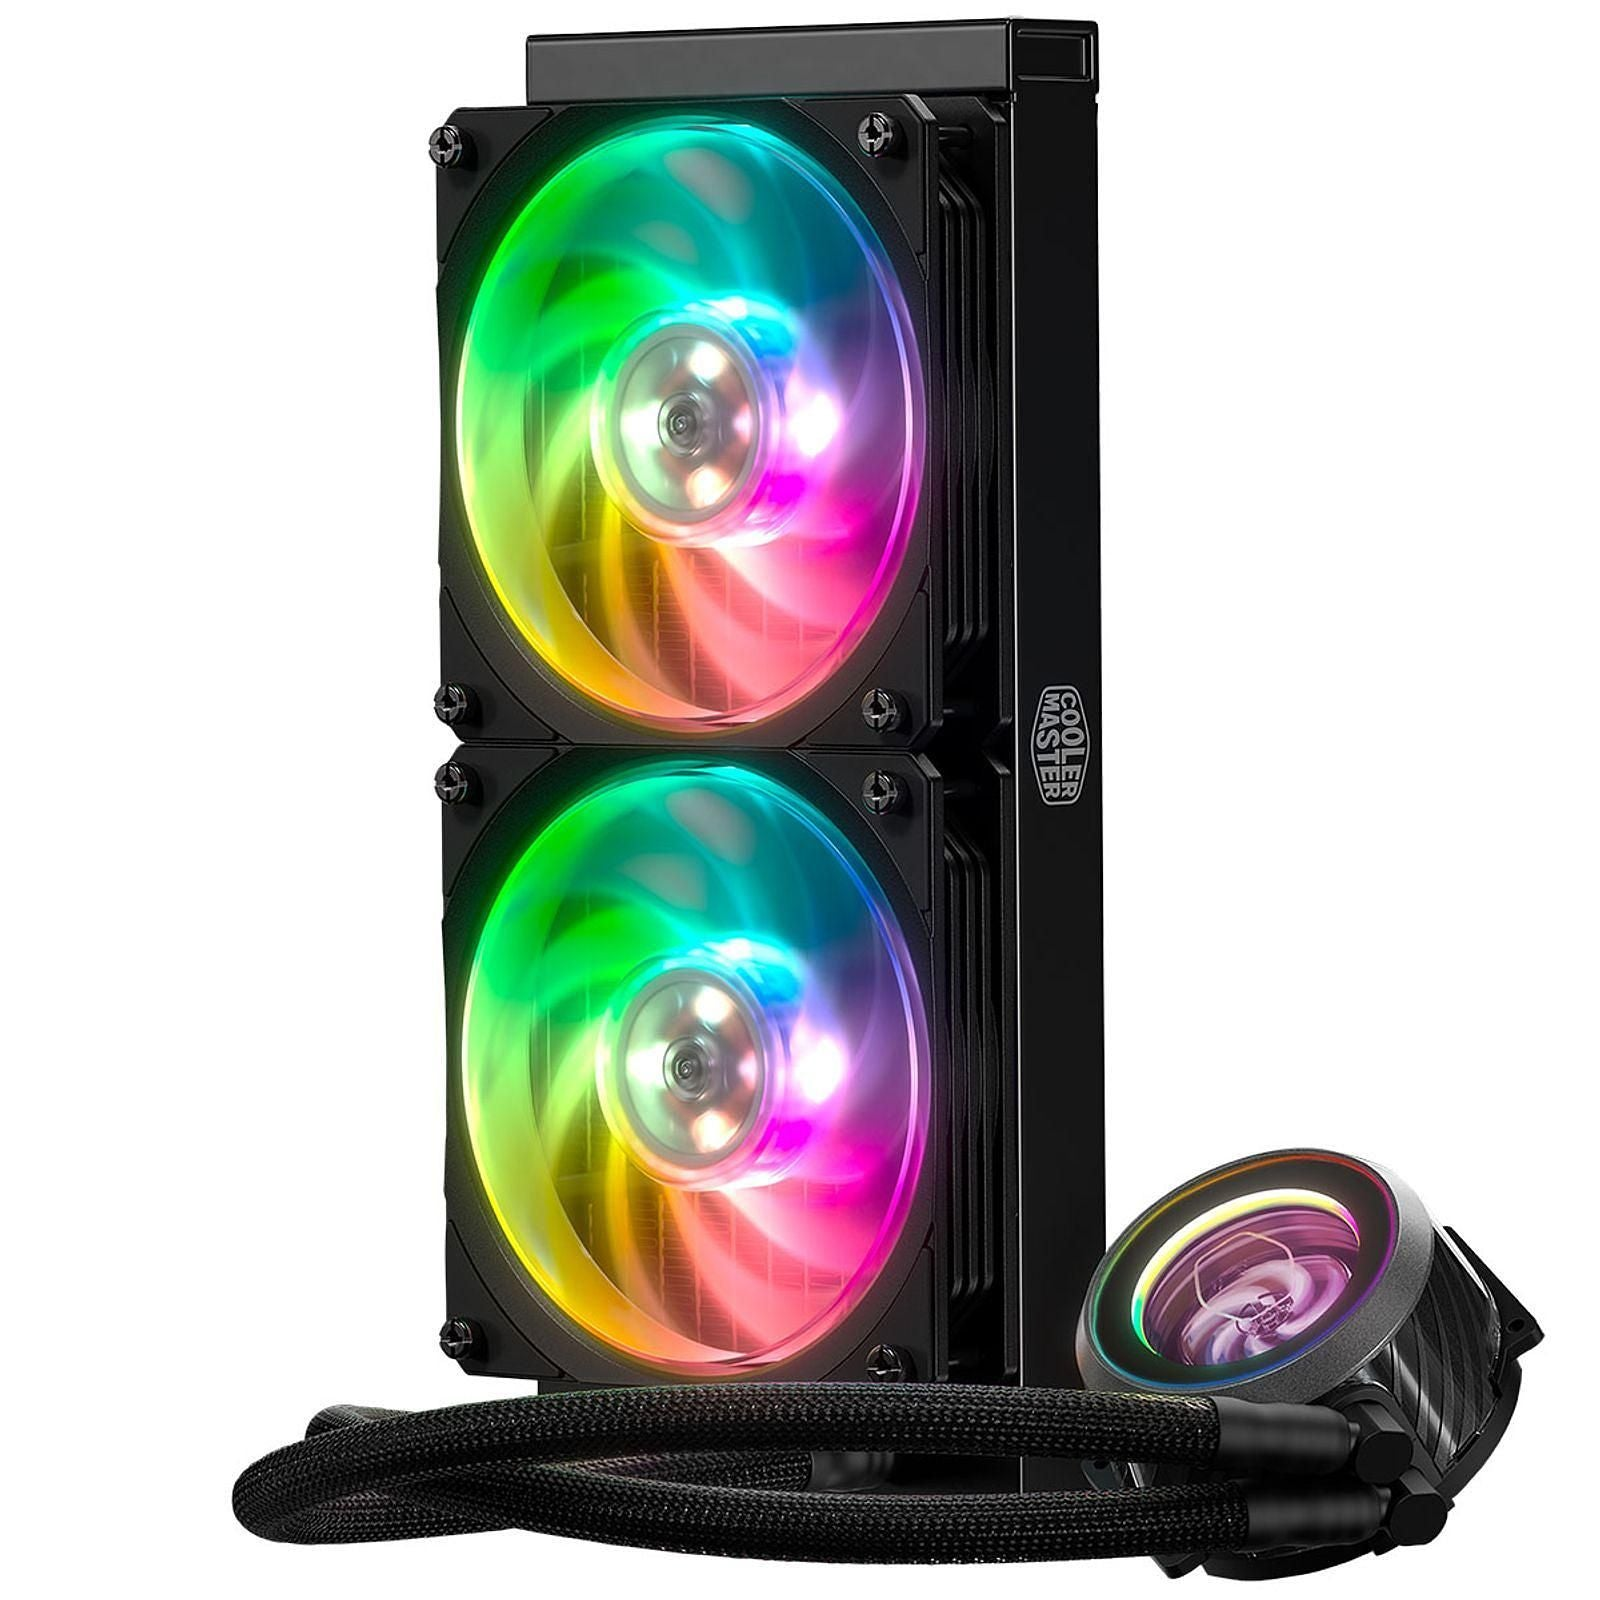 Cooler Master MasterLiquid ML240P Mirage - Kit de Watercooling RGB tout-en-un pour processeur